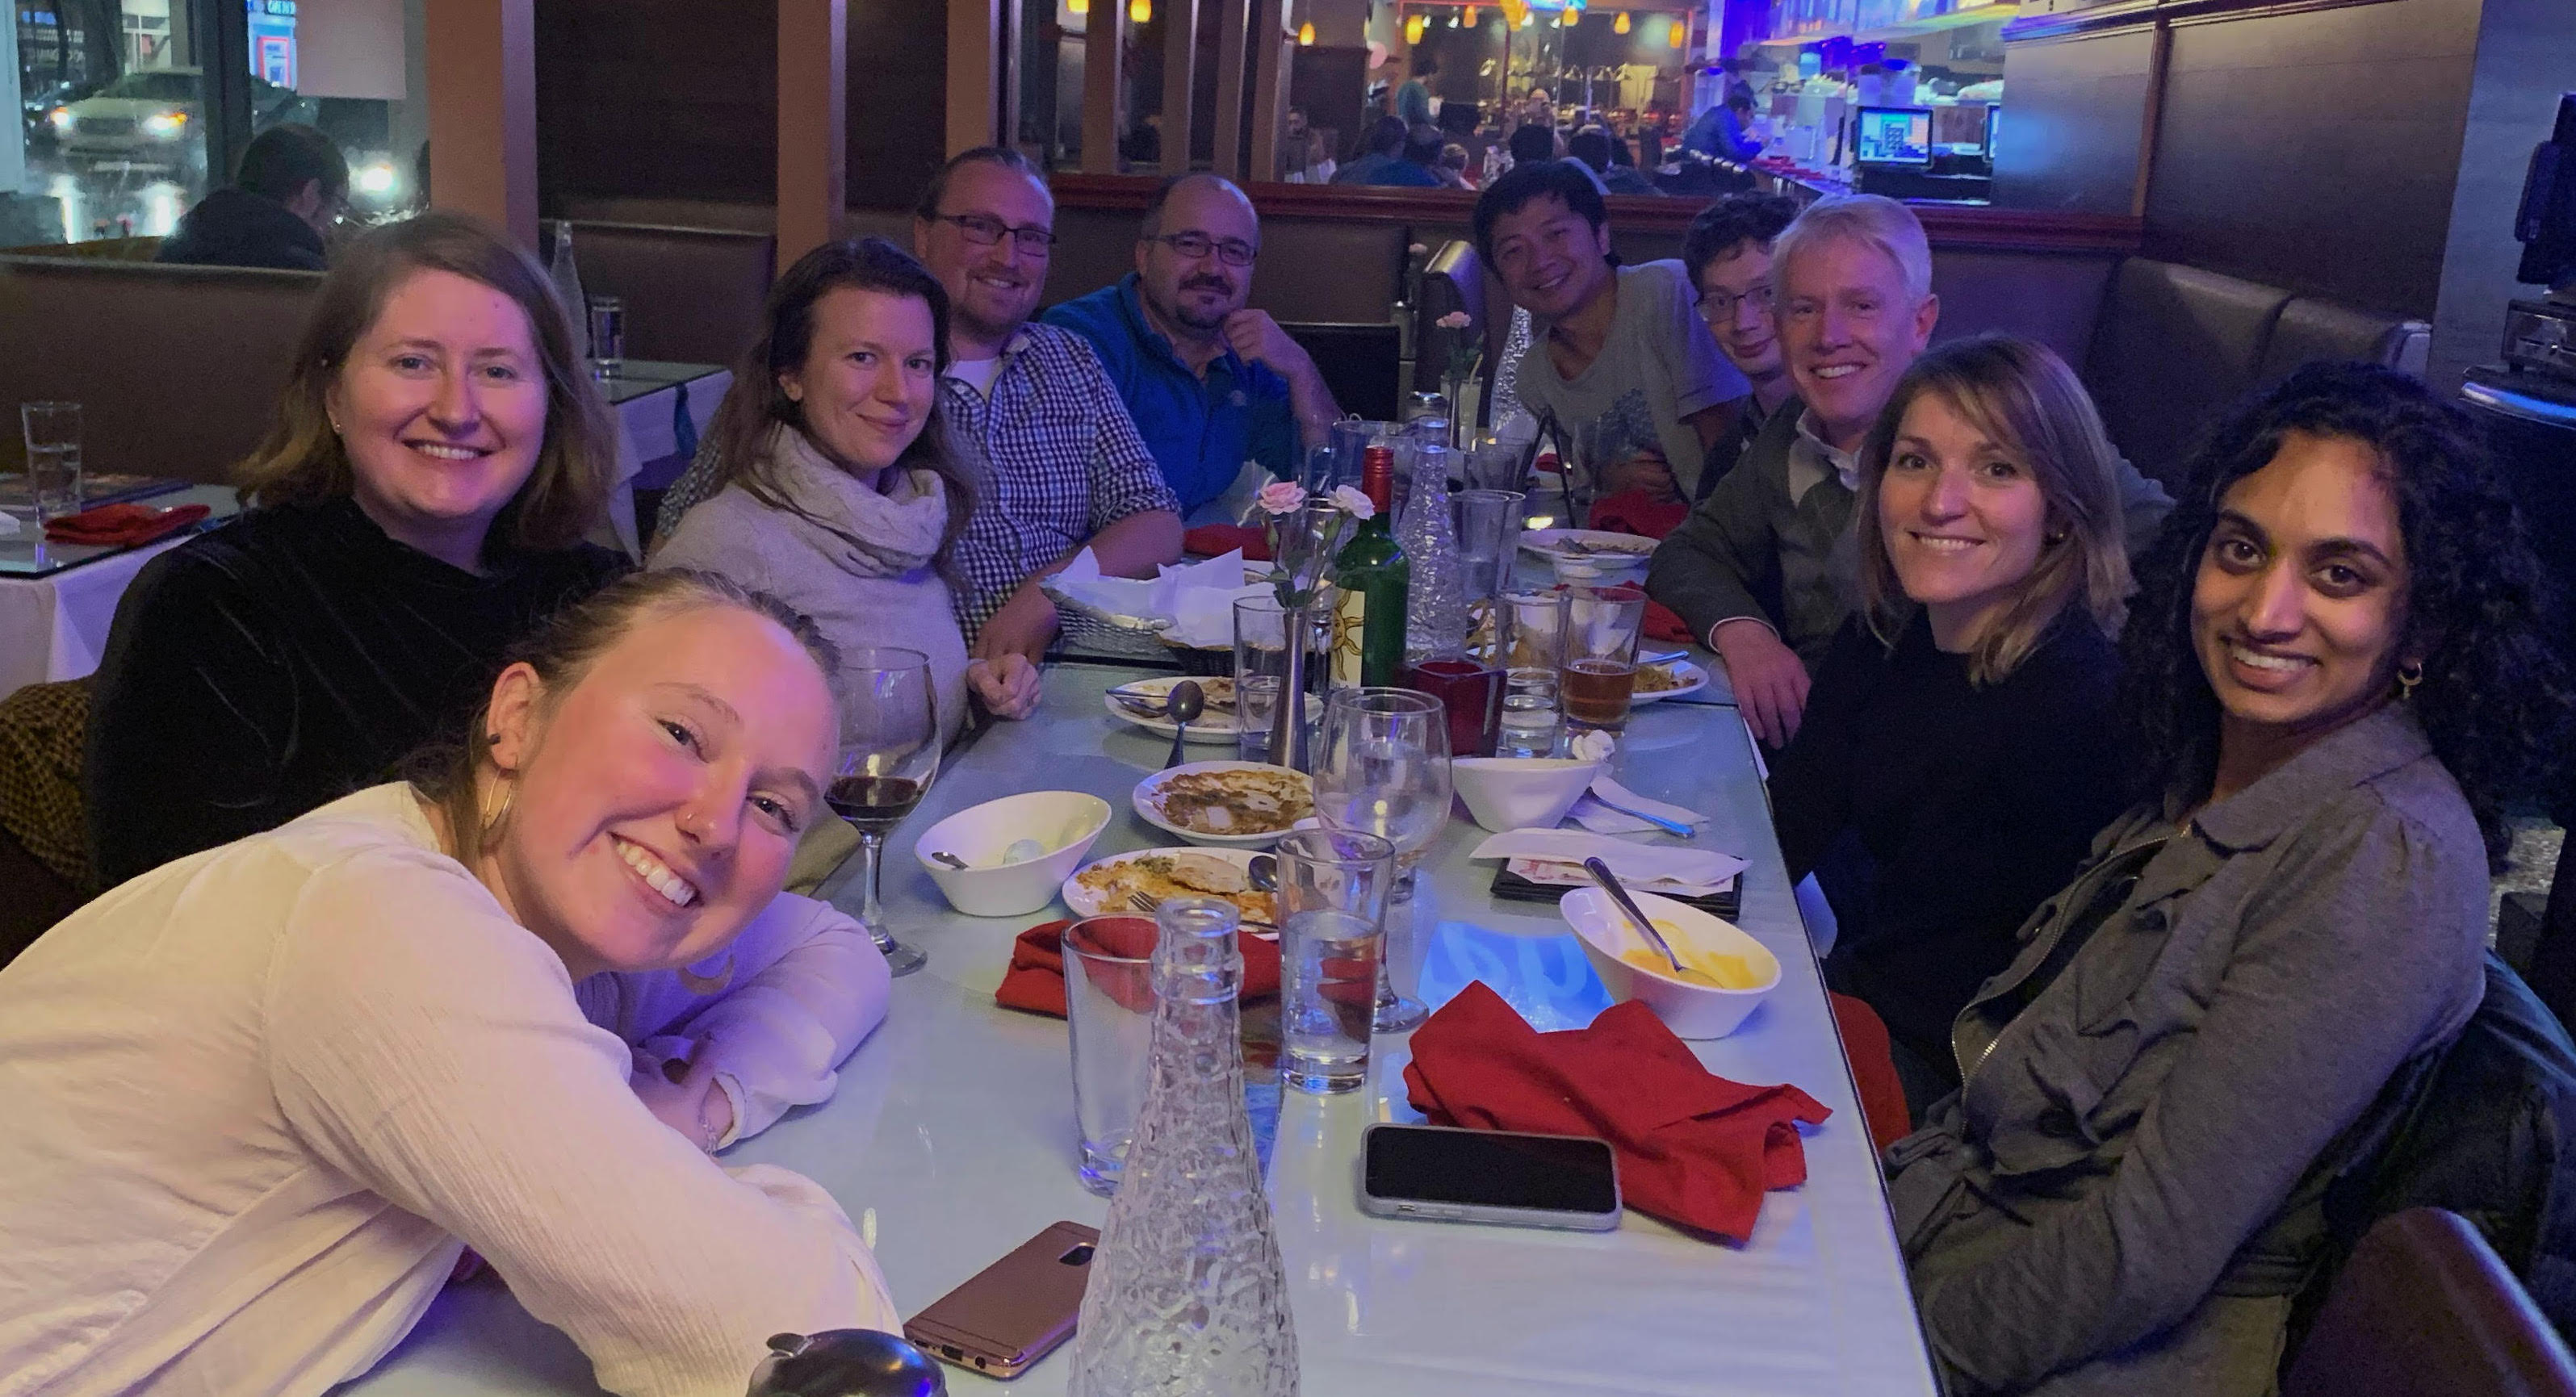 Gathering of current and former members of the Allen group at the AGU 2019 meeting.